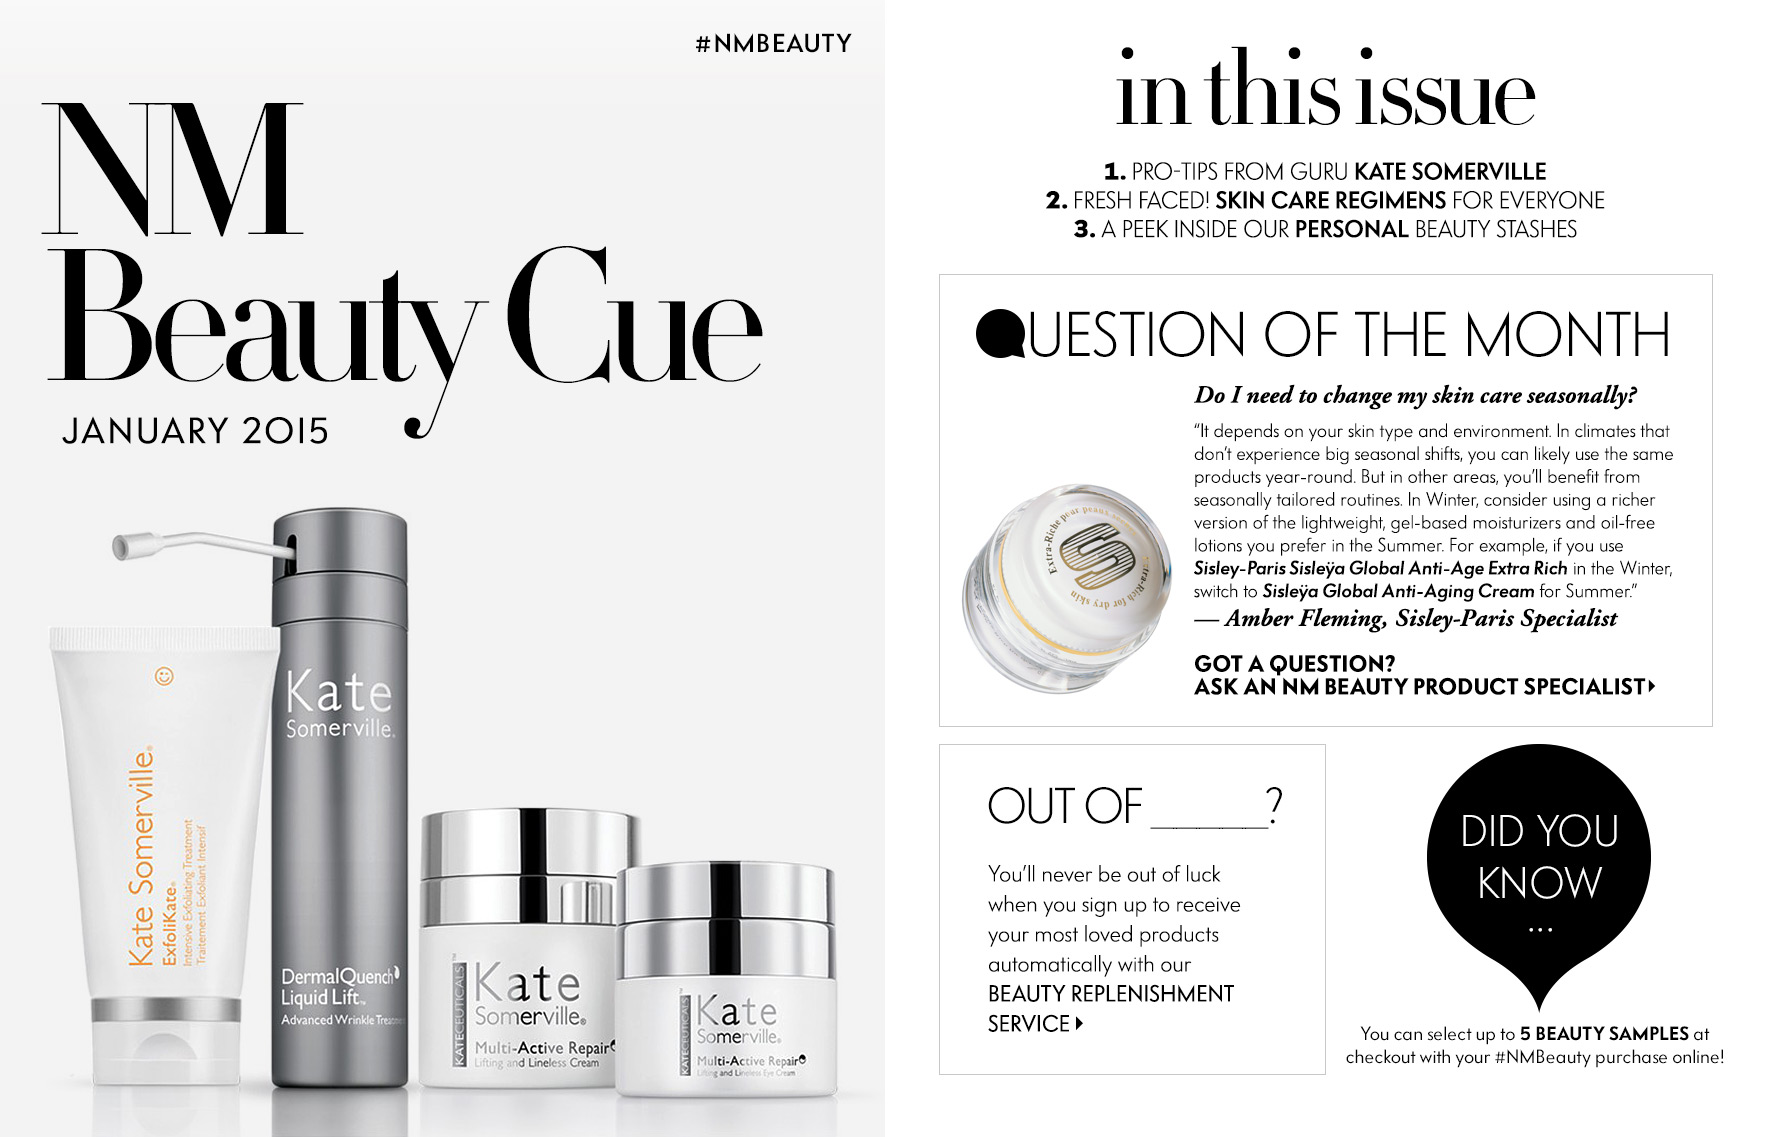 The Beauty Cue: January 2015